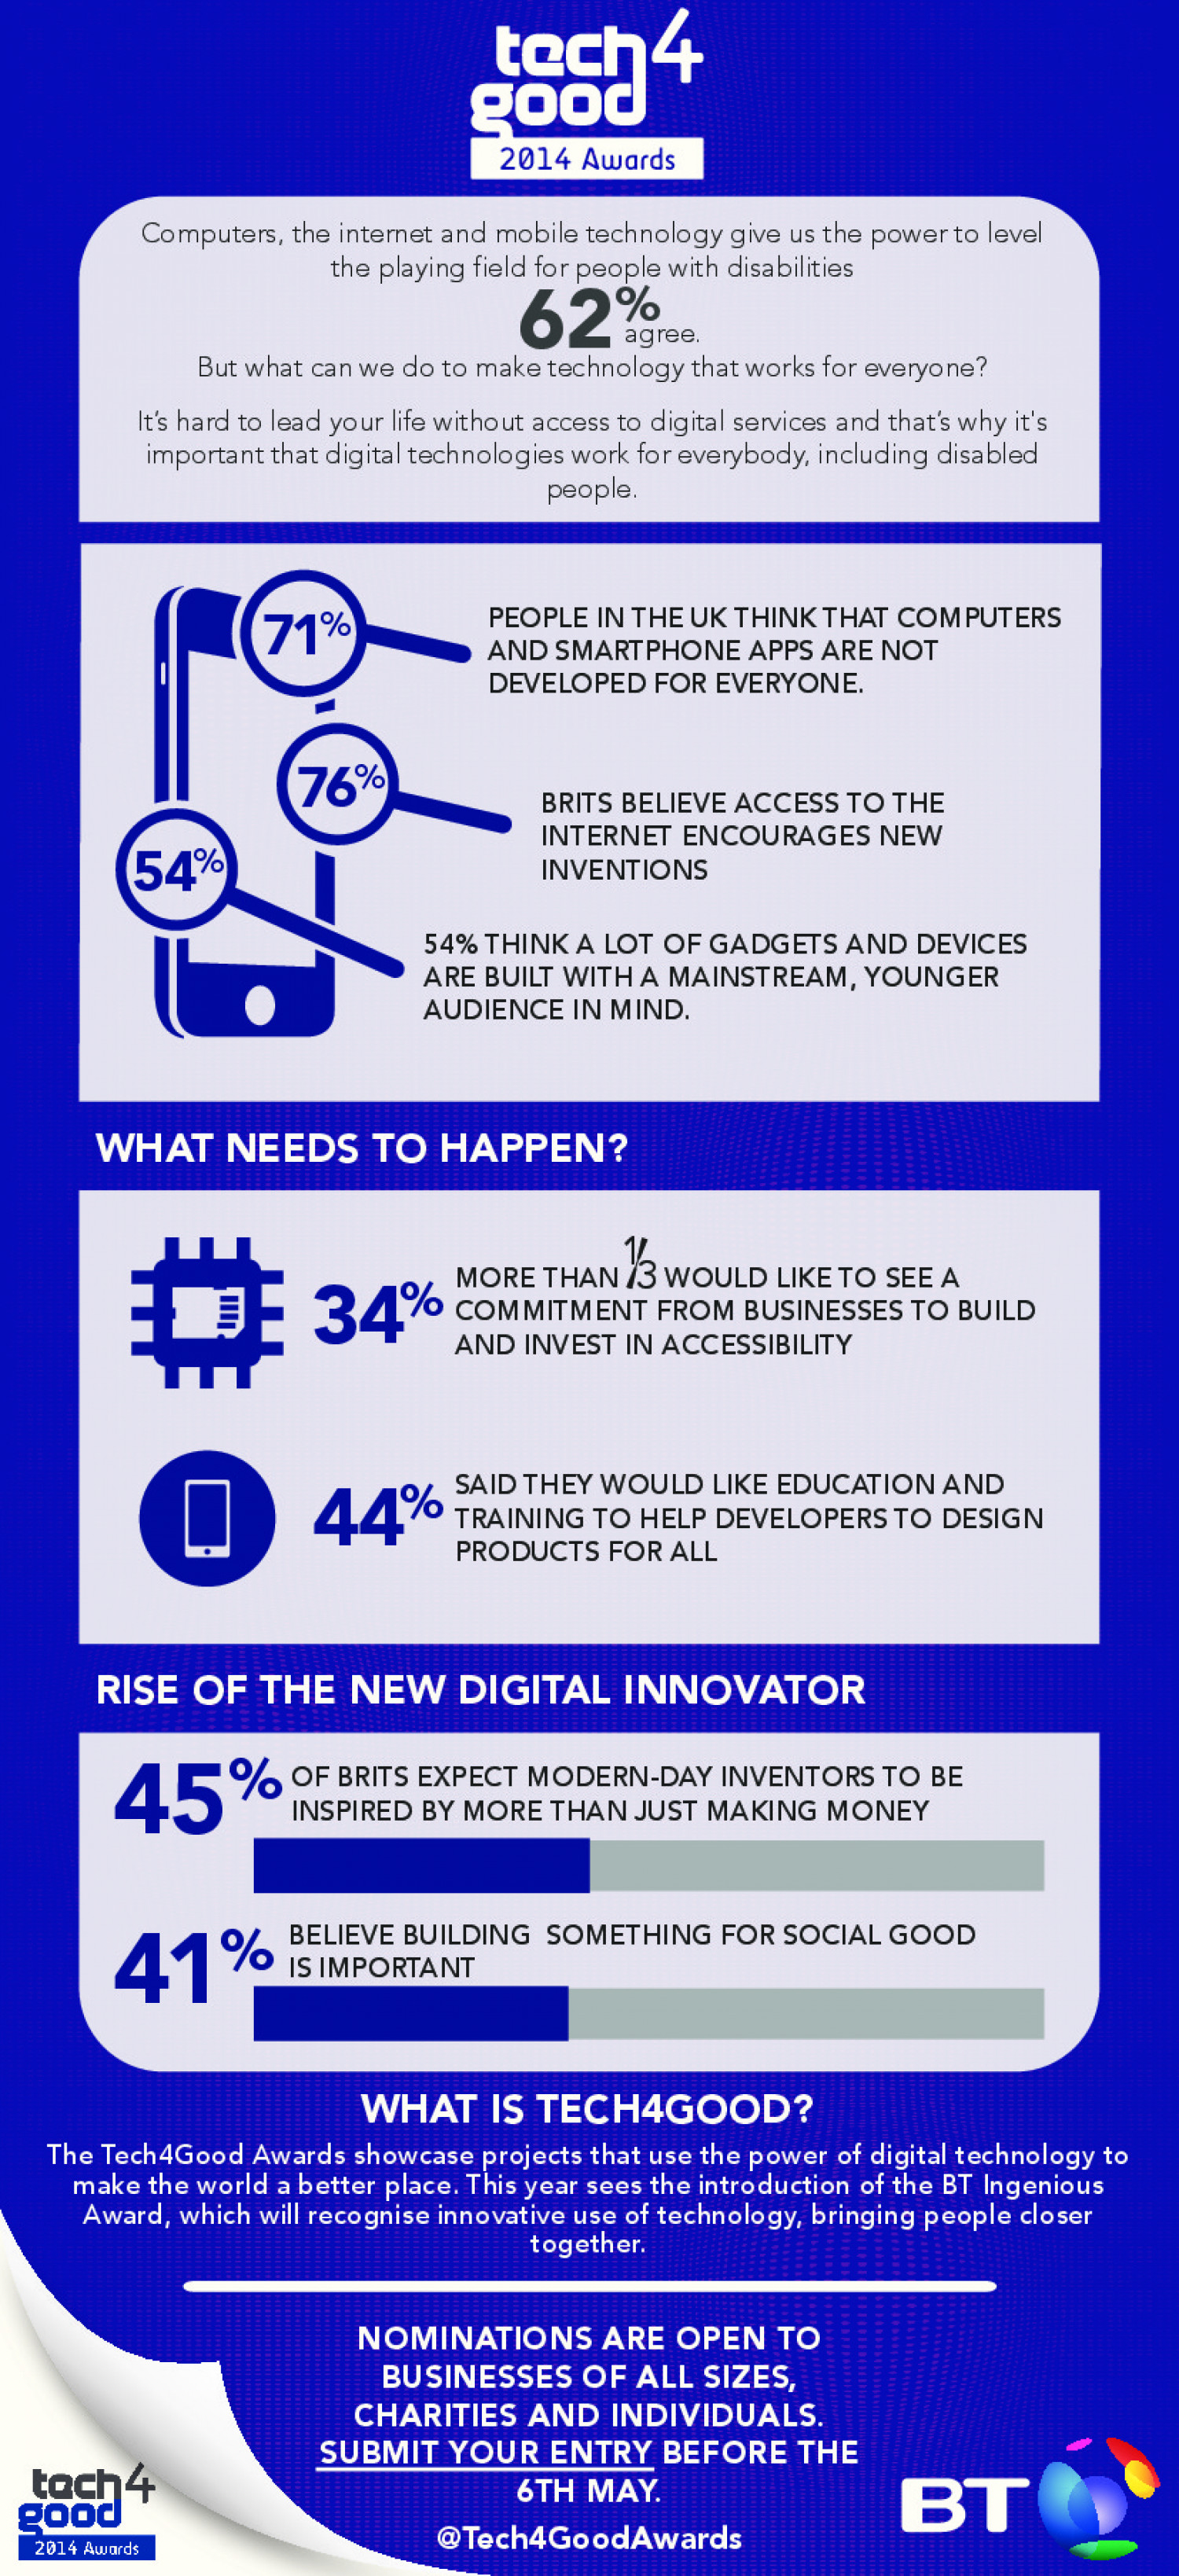 Tech4Good Awards 2014 Infographic